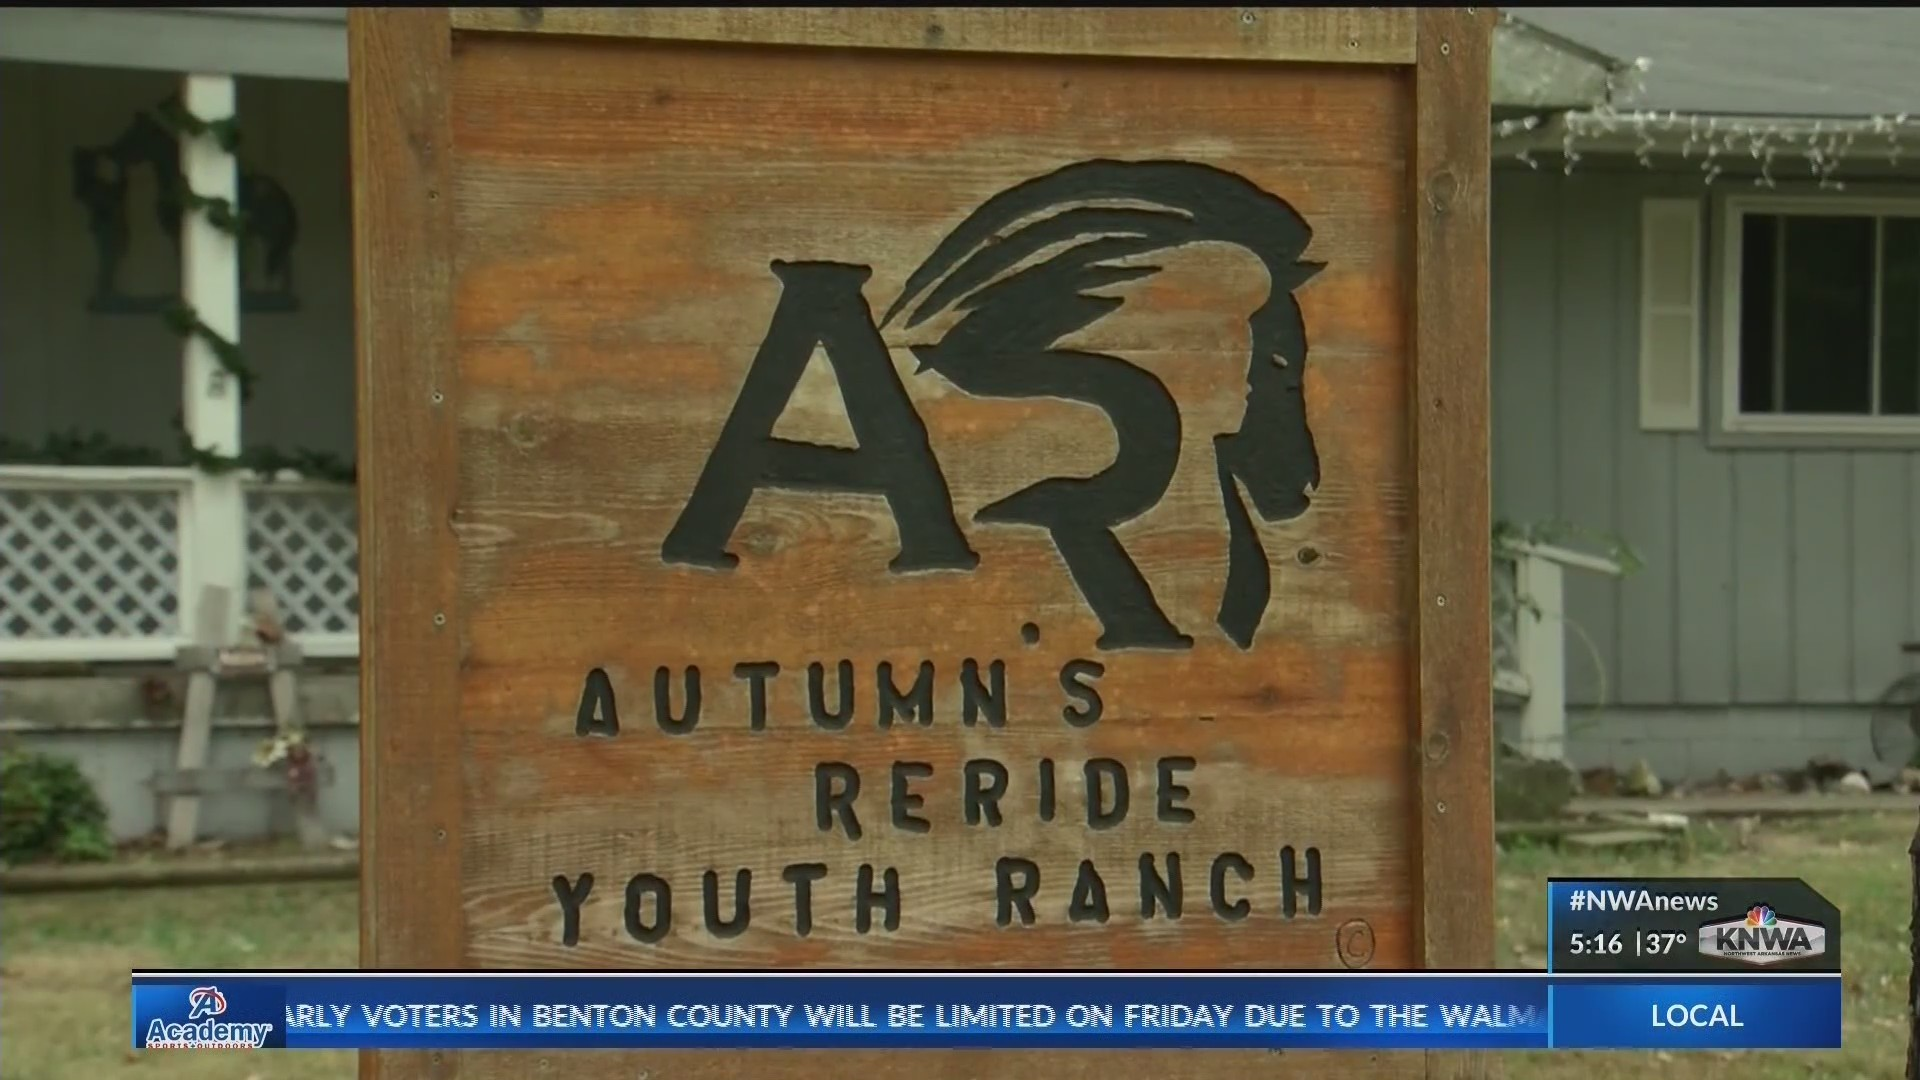 Autumn_s_Reride_Youth_Ranch_Benefit_1_20181102105827